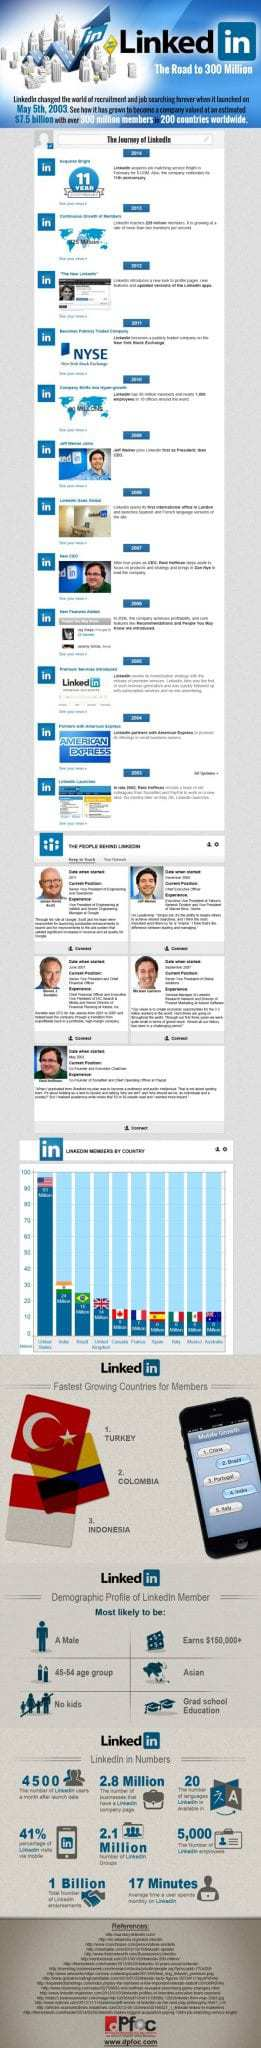 The Top 10 LinkedIn Facts and Figures in 2014 You Need To Know #linkedin #infographic